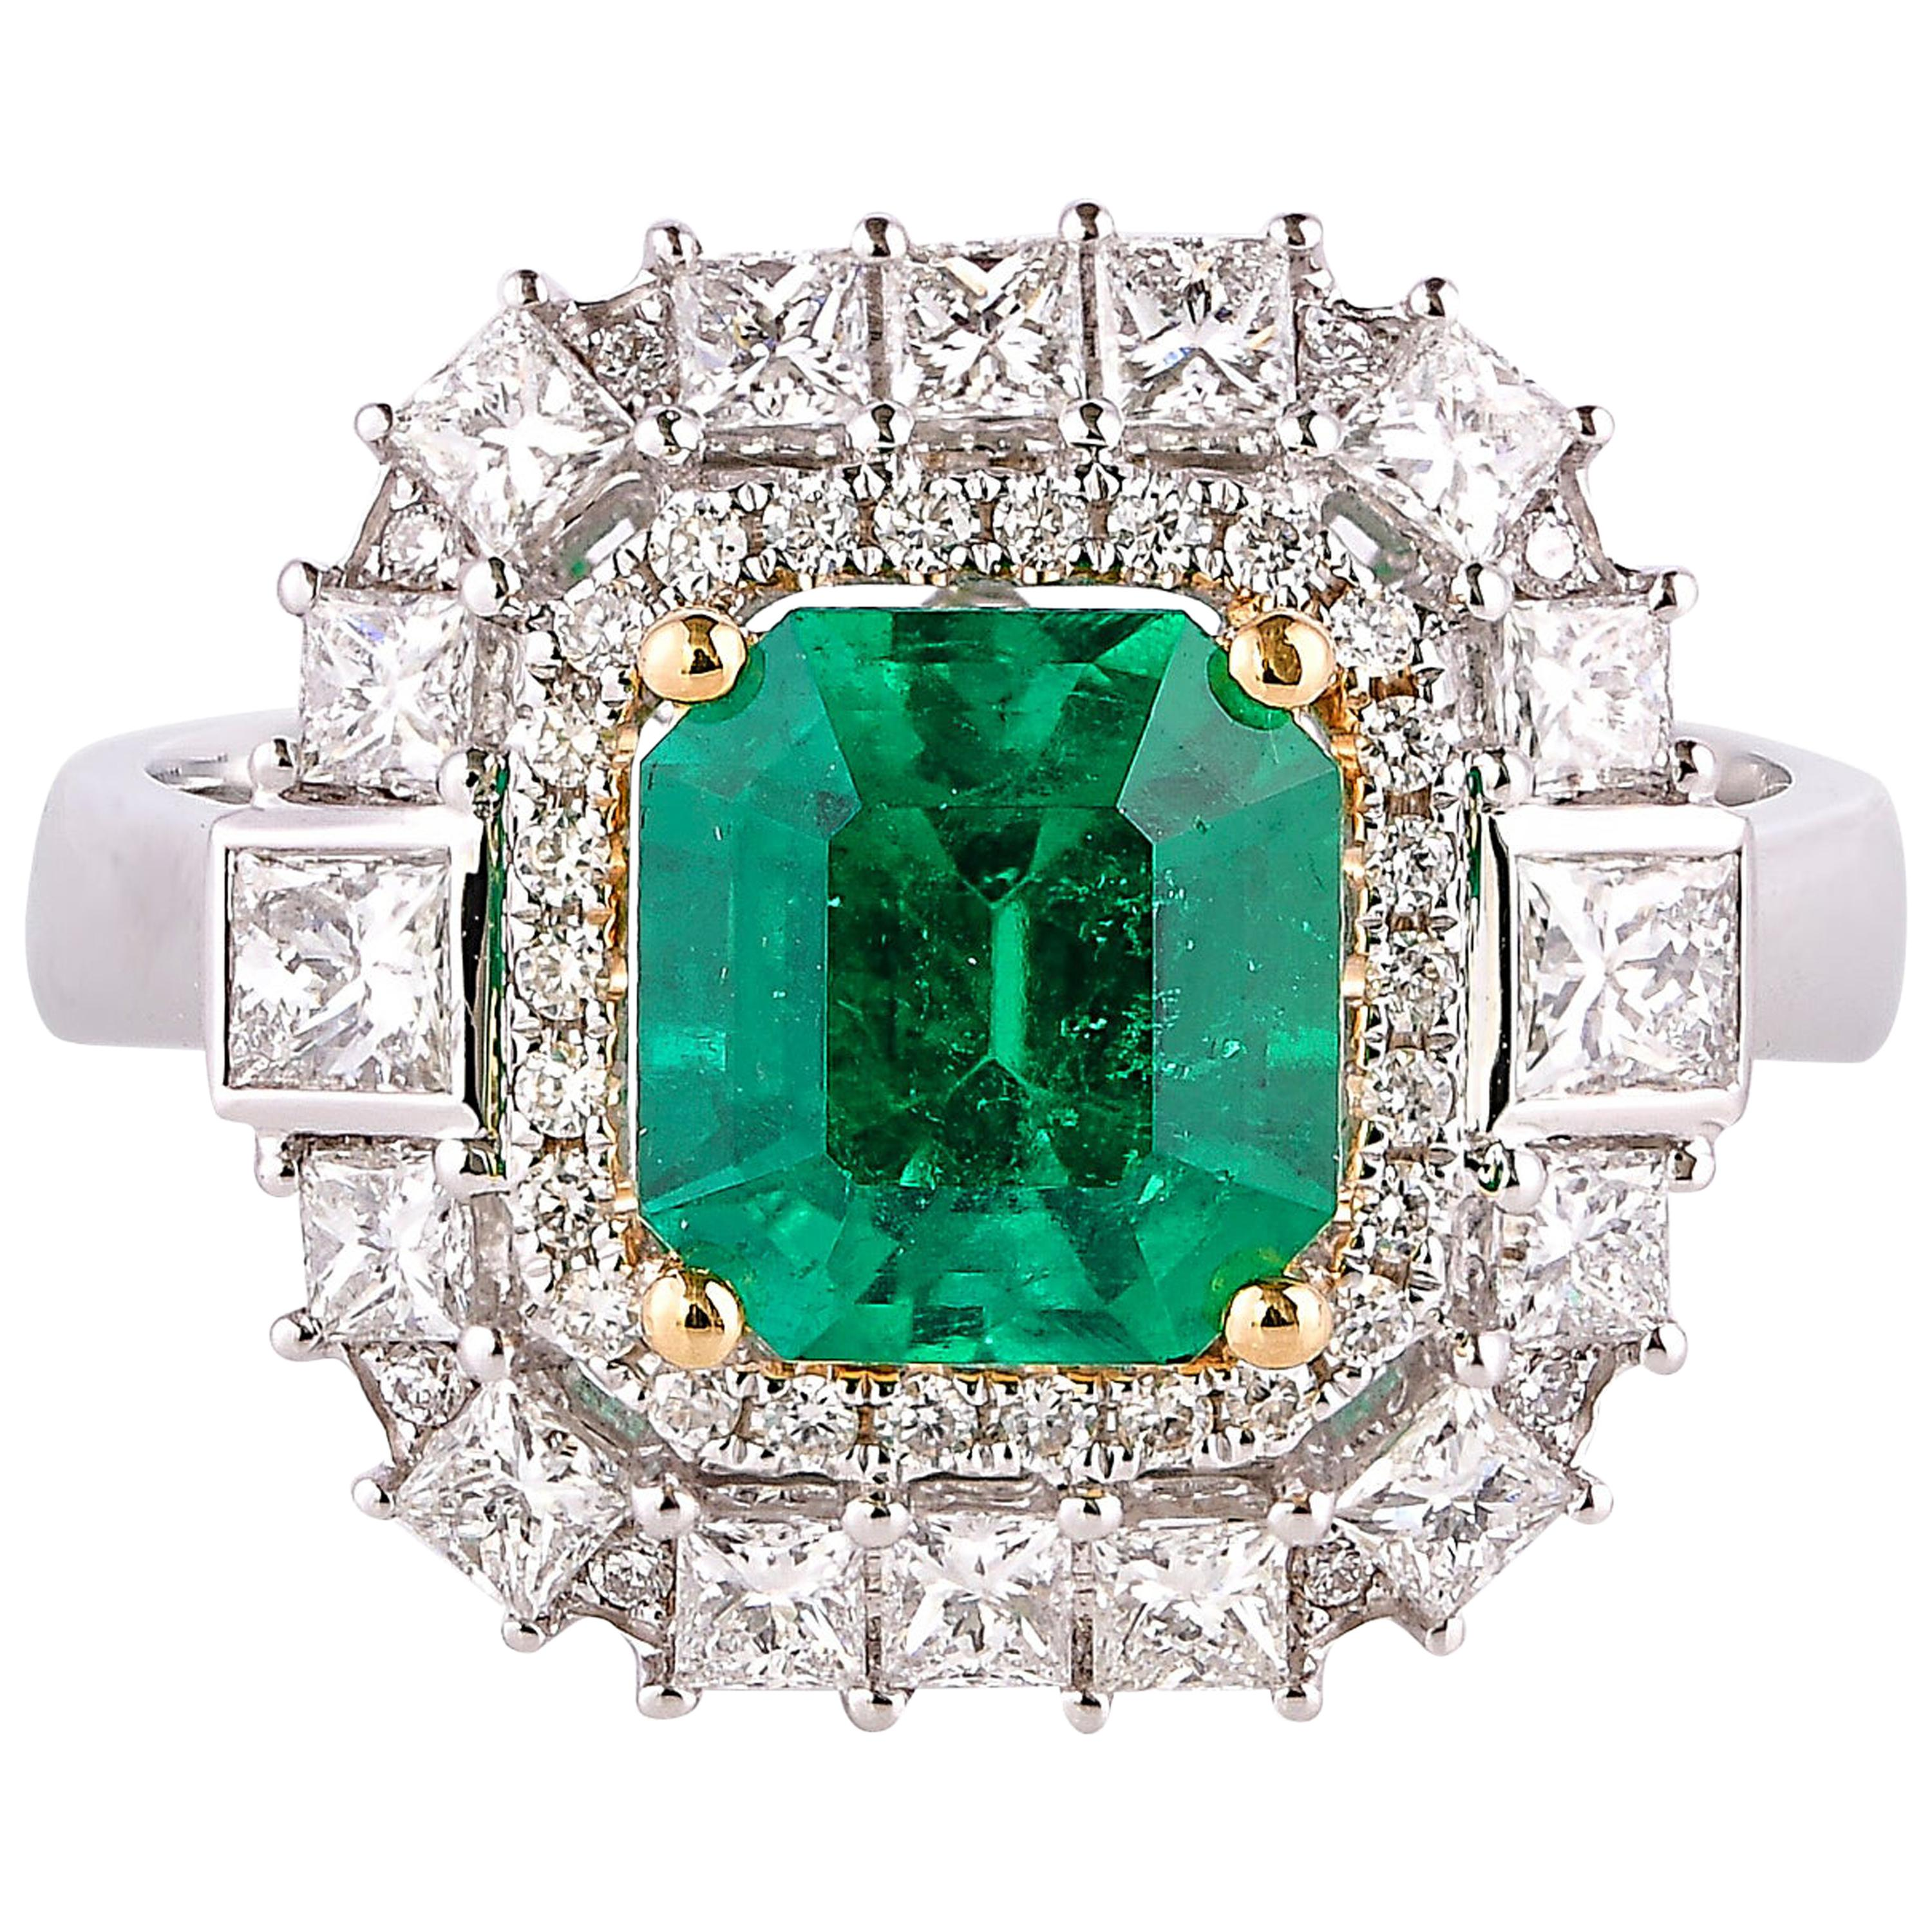 1.7 Carat Colombian Emerald and White Diamond Ring in 18 Karat White Gold